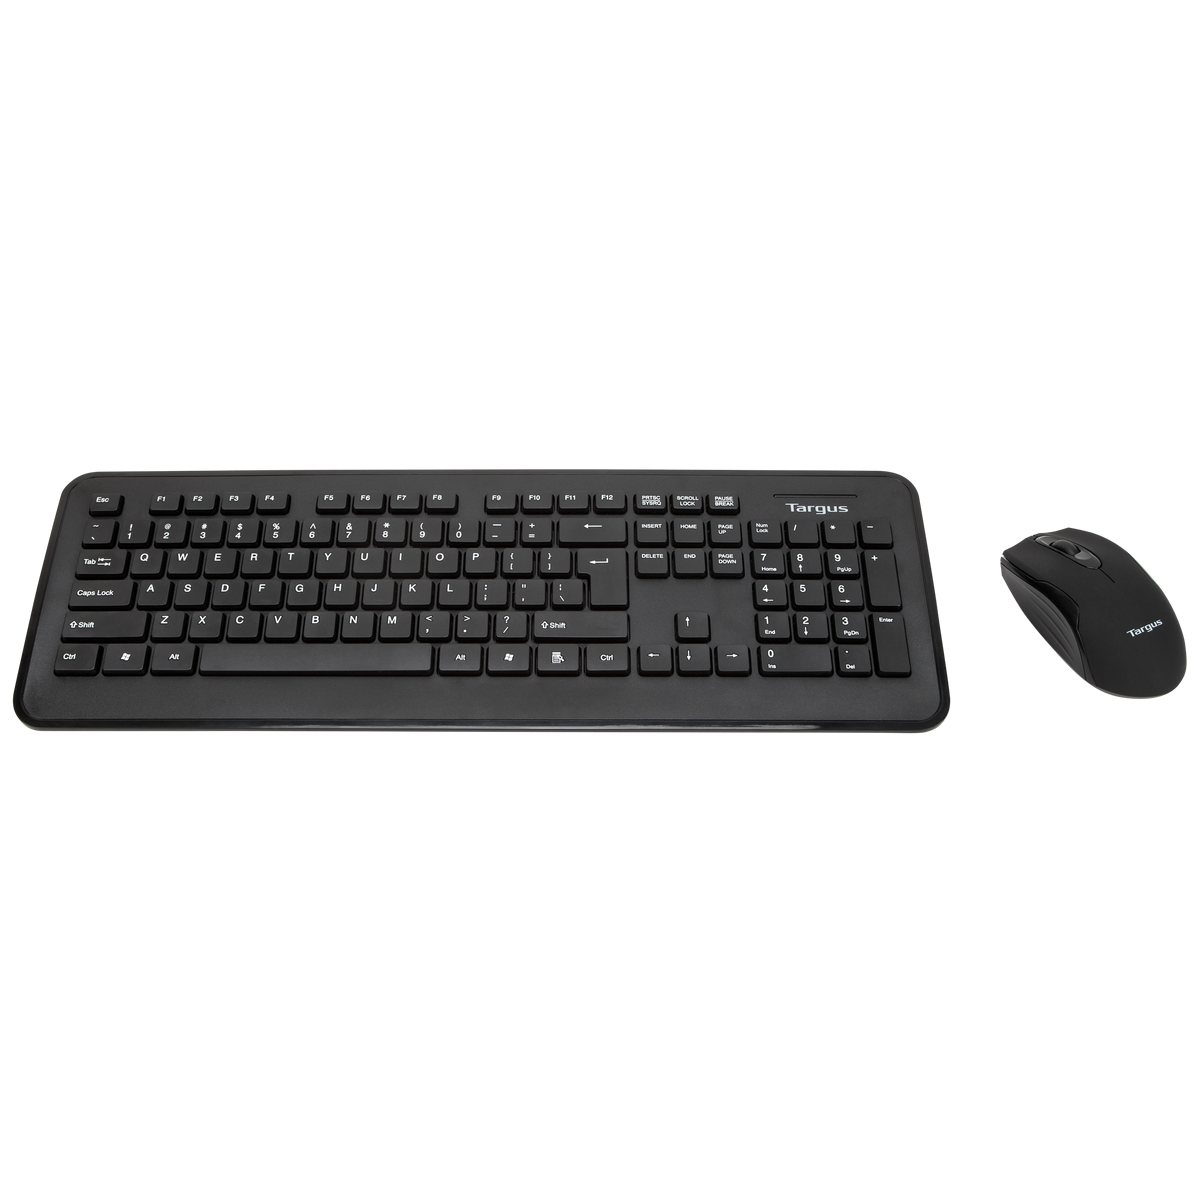 wireless mouse and keyboard akm001us keyboards targus. Black Bedroom Furniture Sets. Home Design Ideas